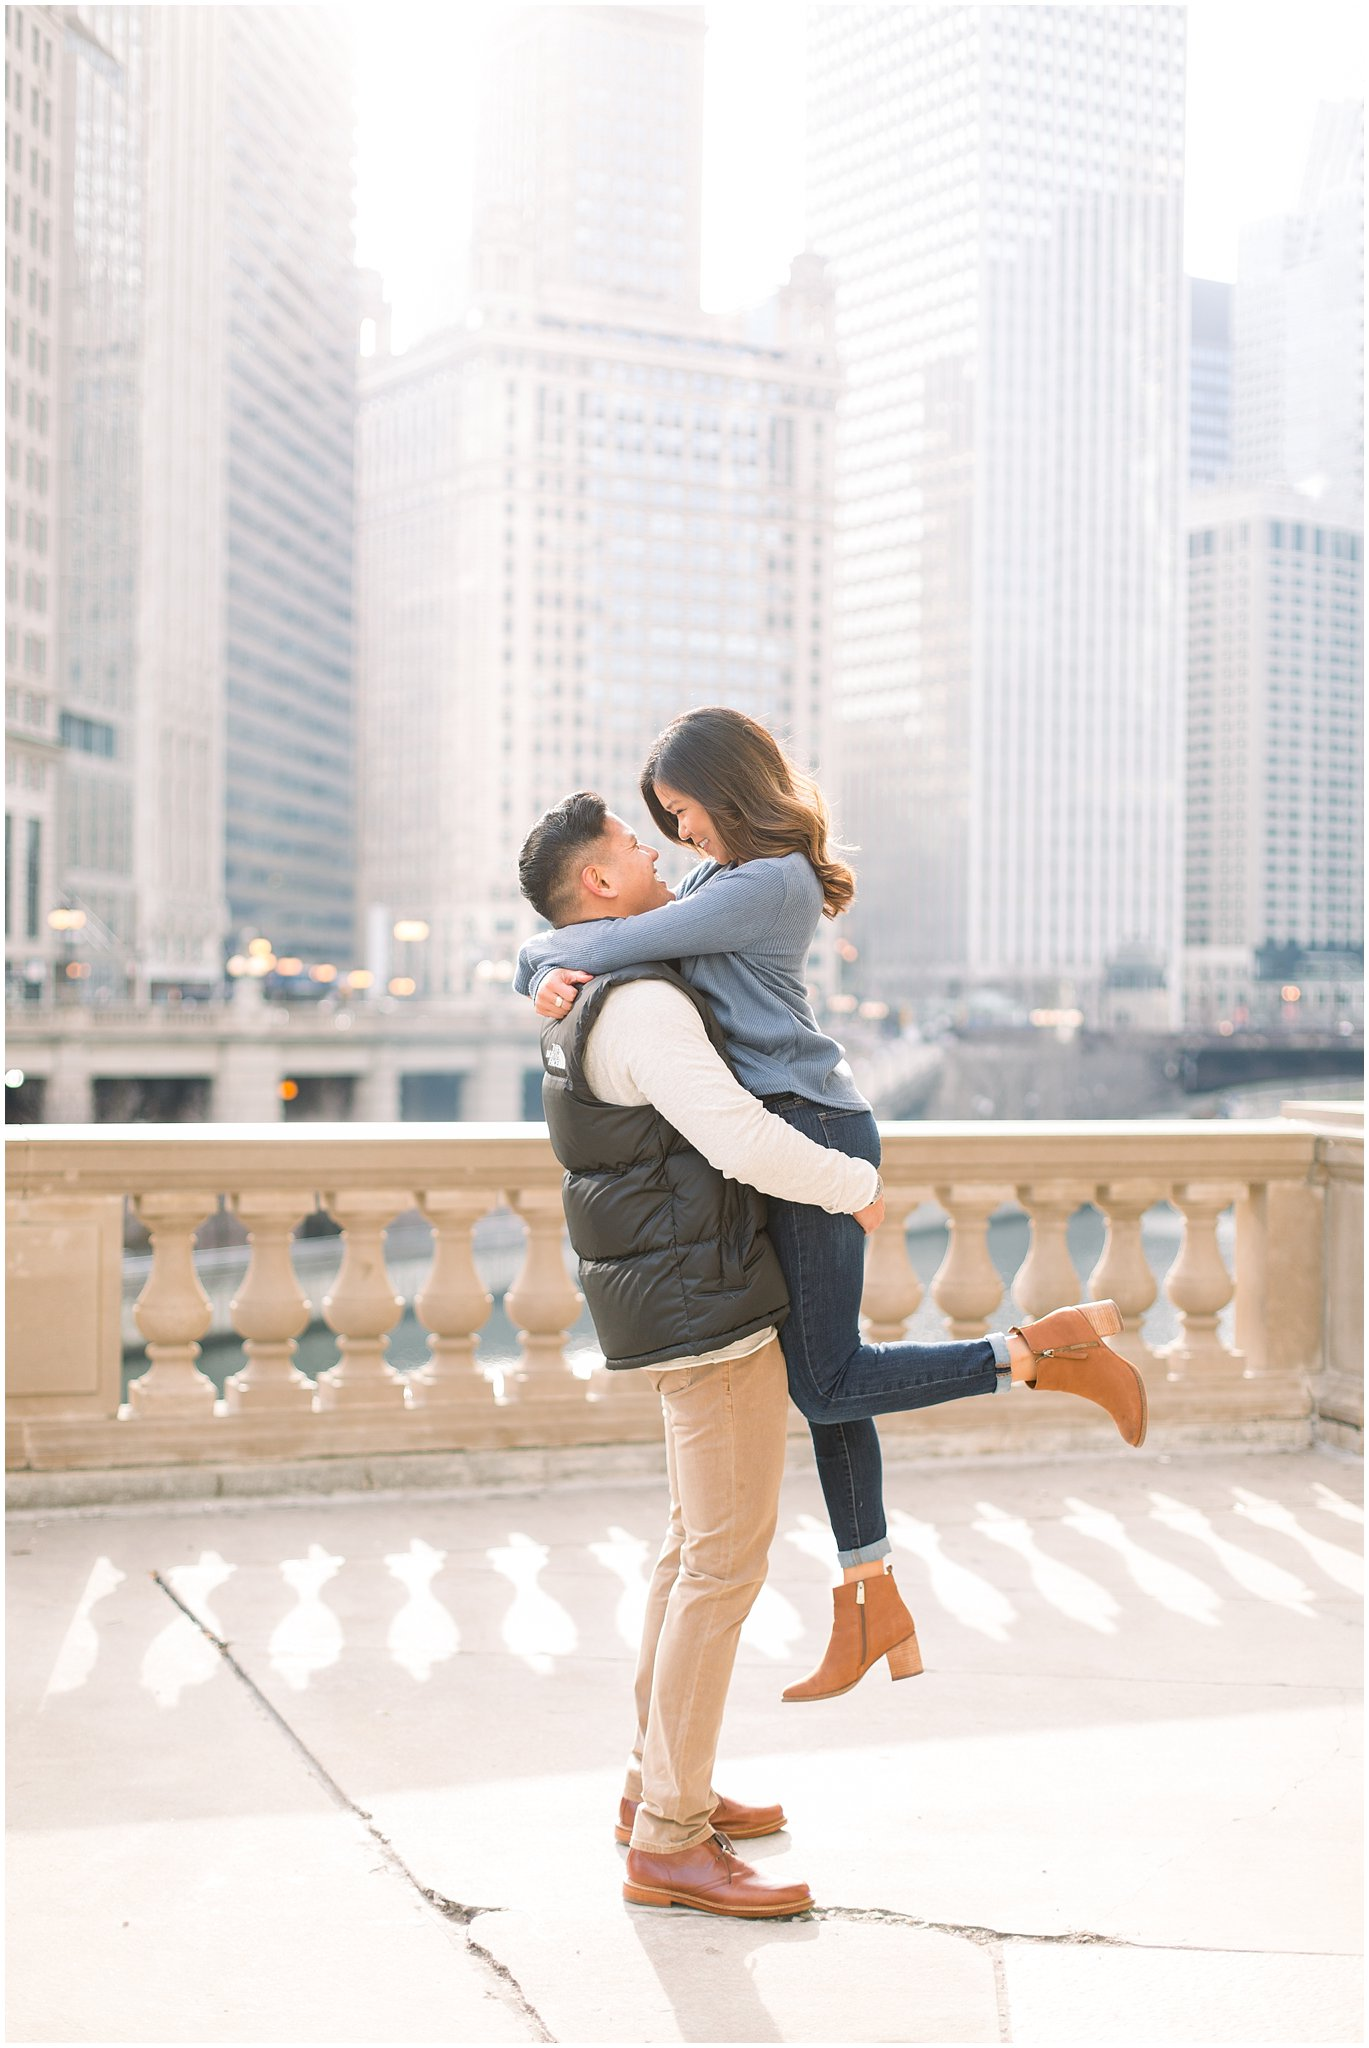 winter-downtown-engagement-session_0013.jpg